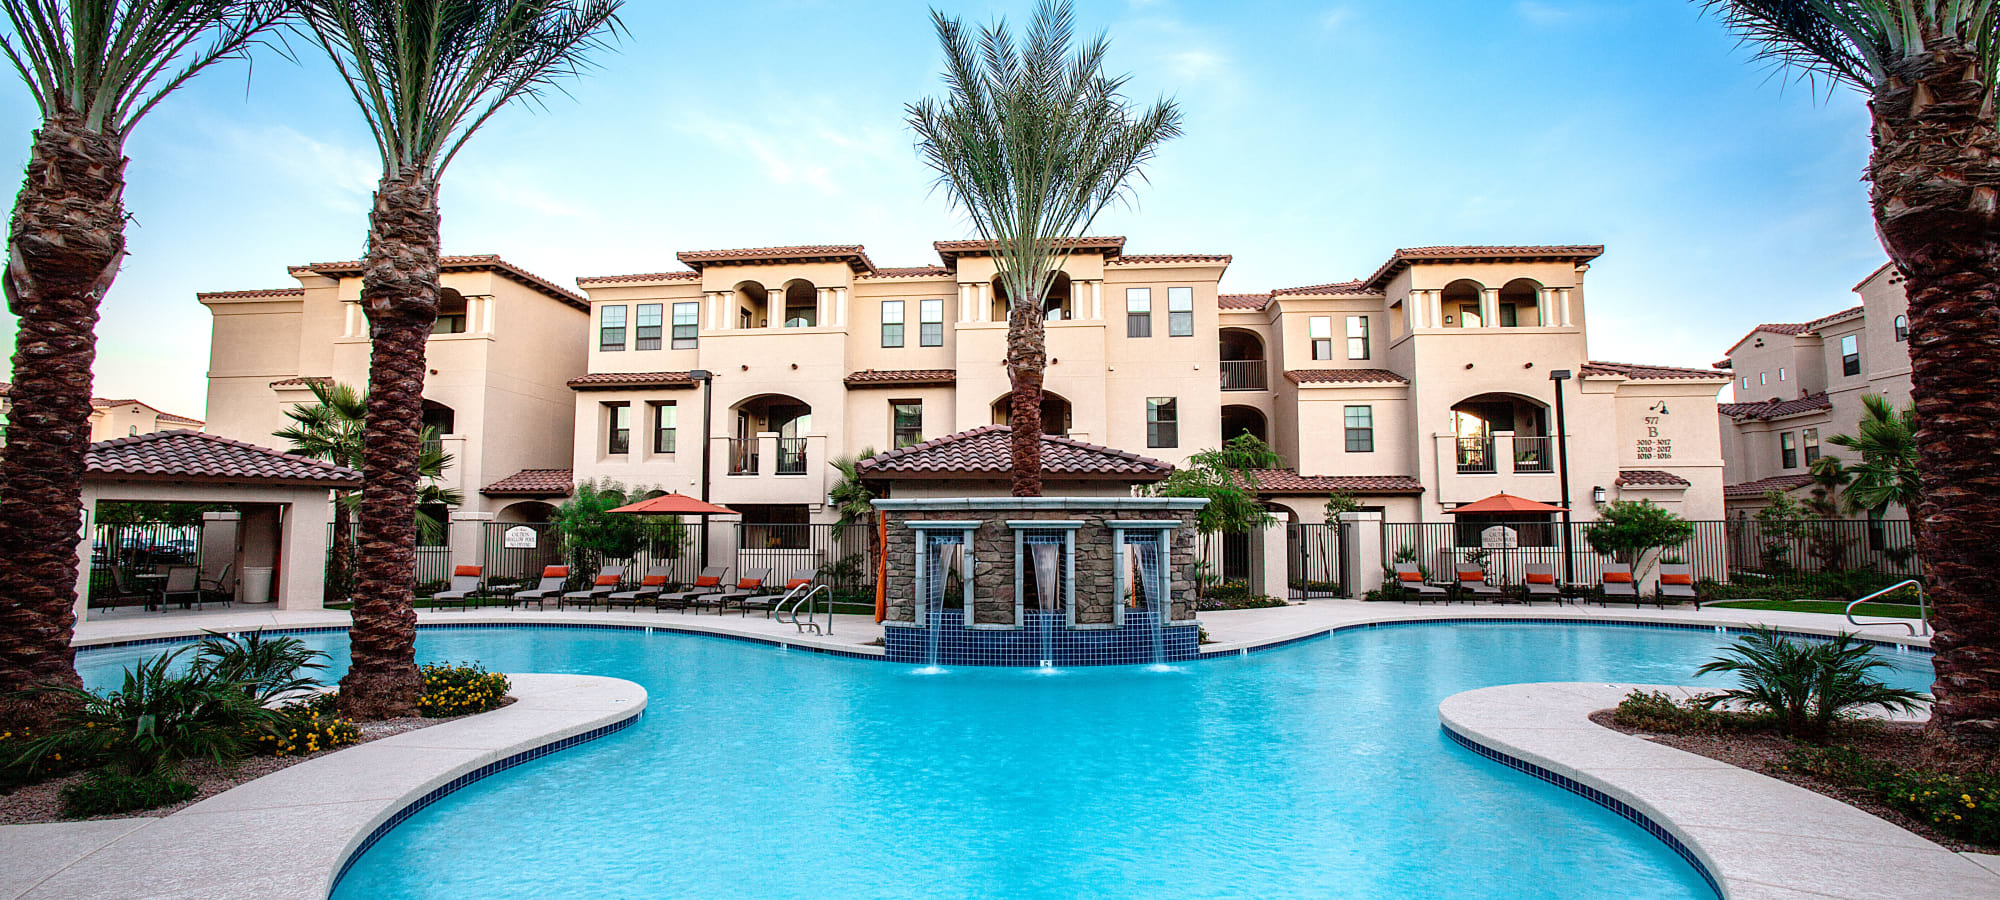 Gorgeous resort-style swimming pool at San Marquis in Tempe, Arizona